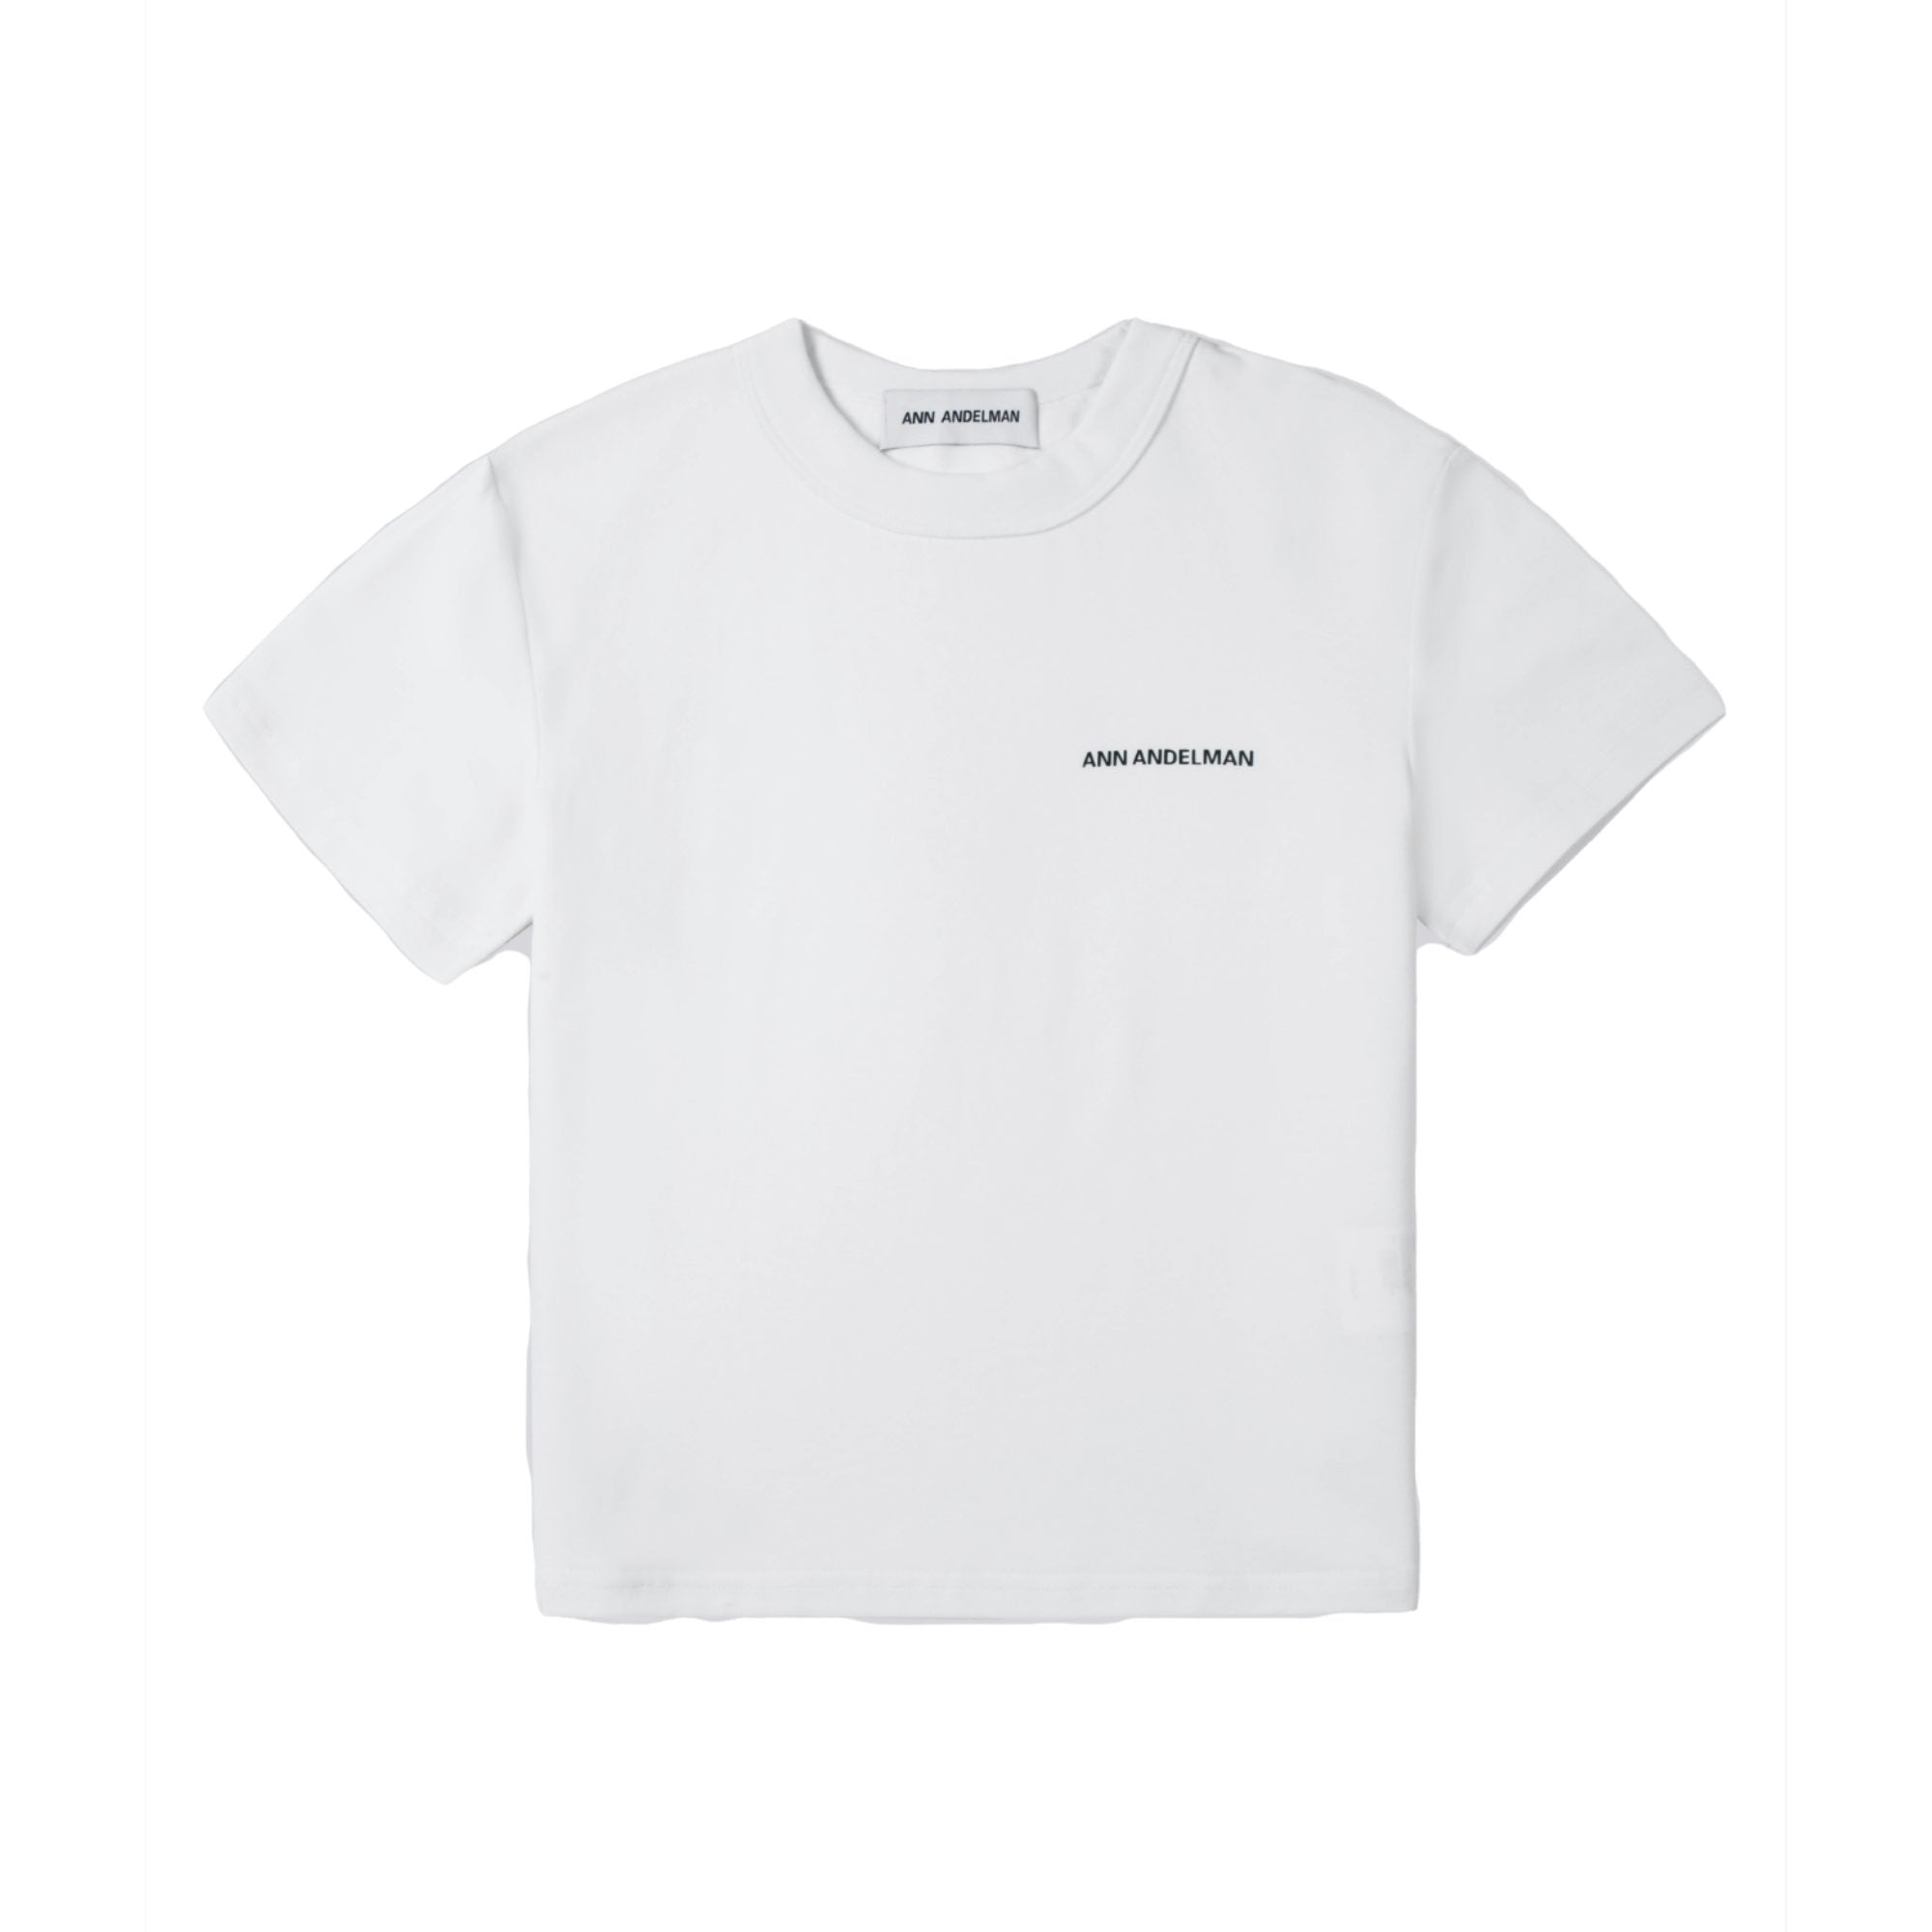 ANN ANDELMAN White Small Logo Tee | MADA IN CHINA